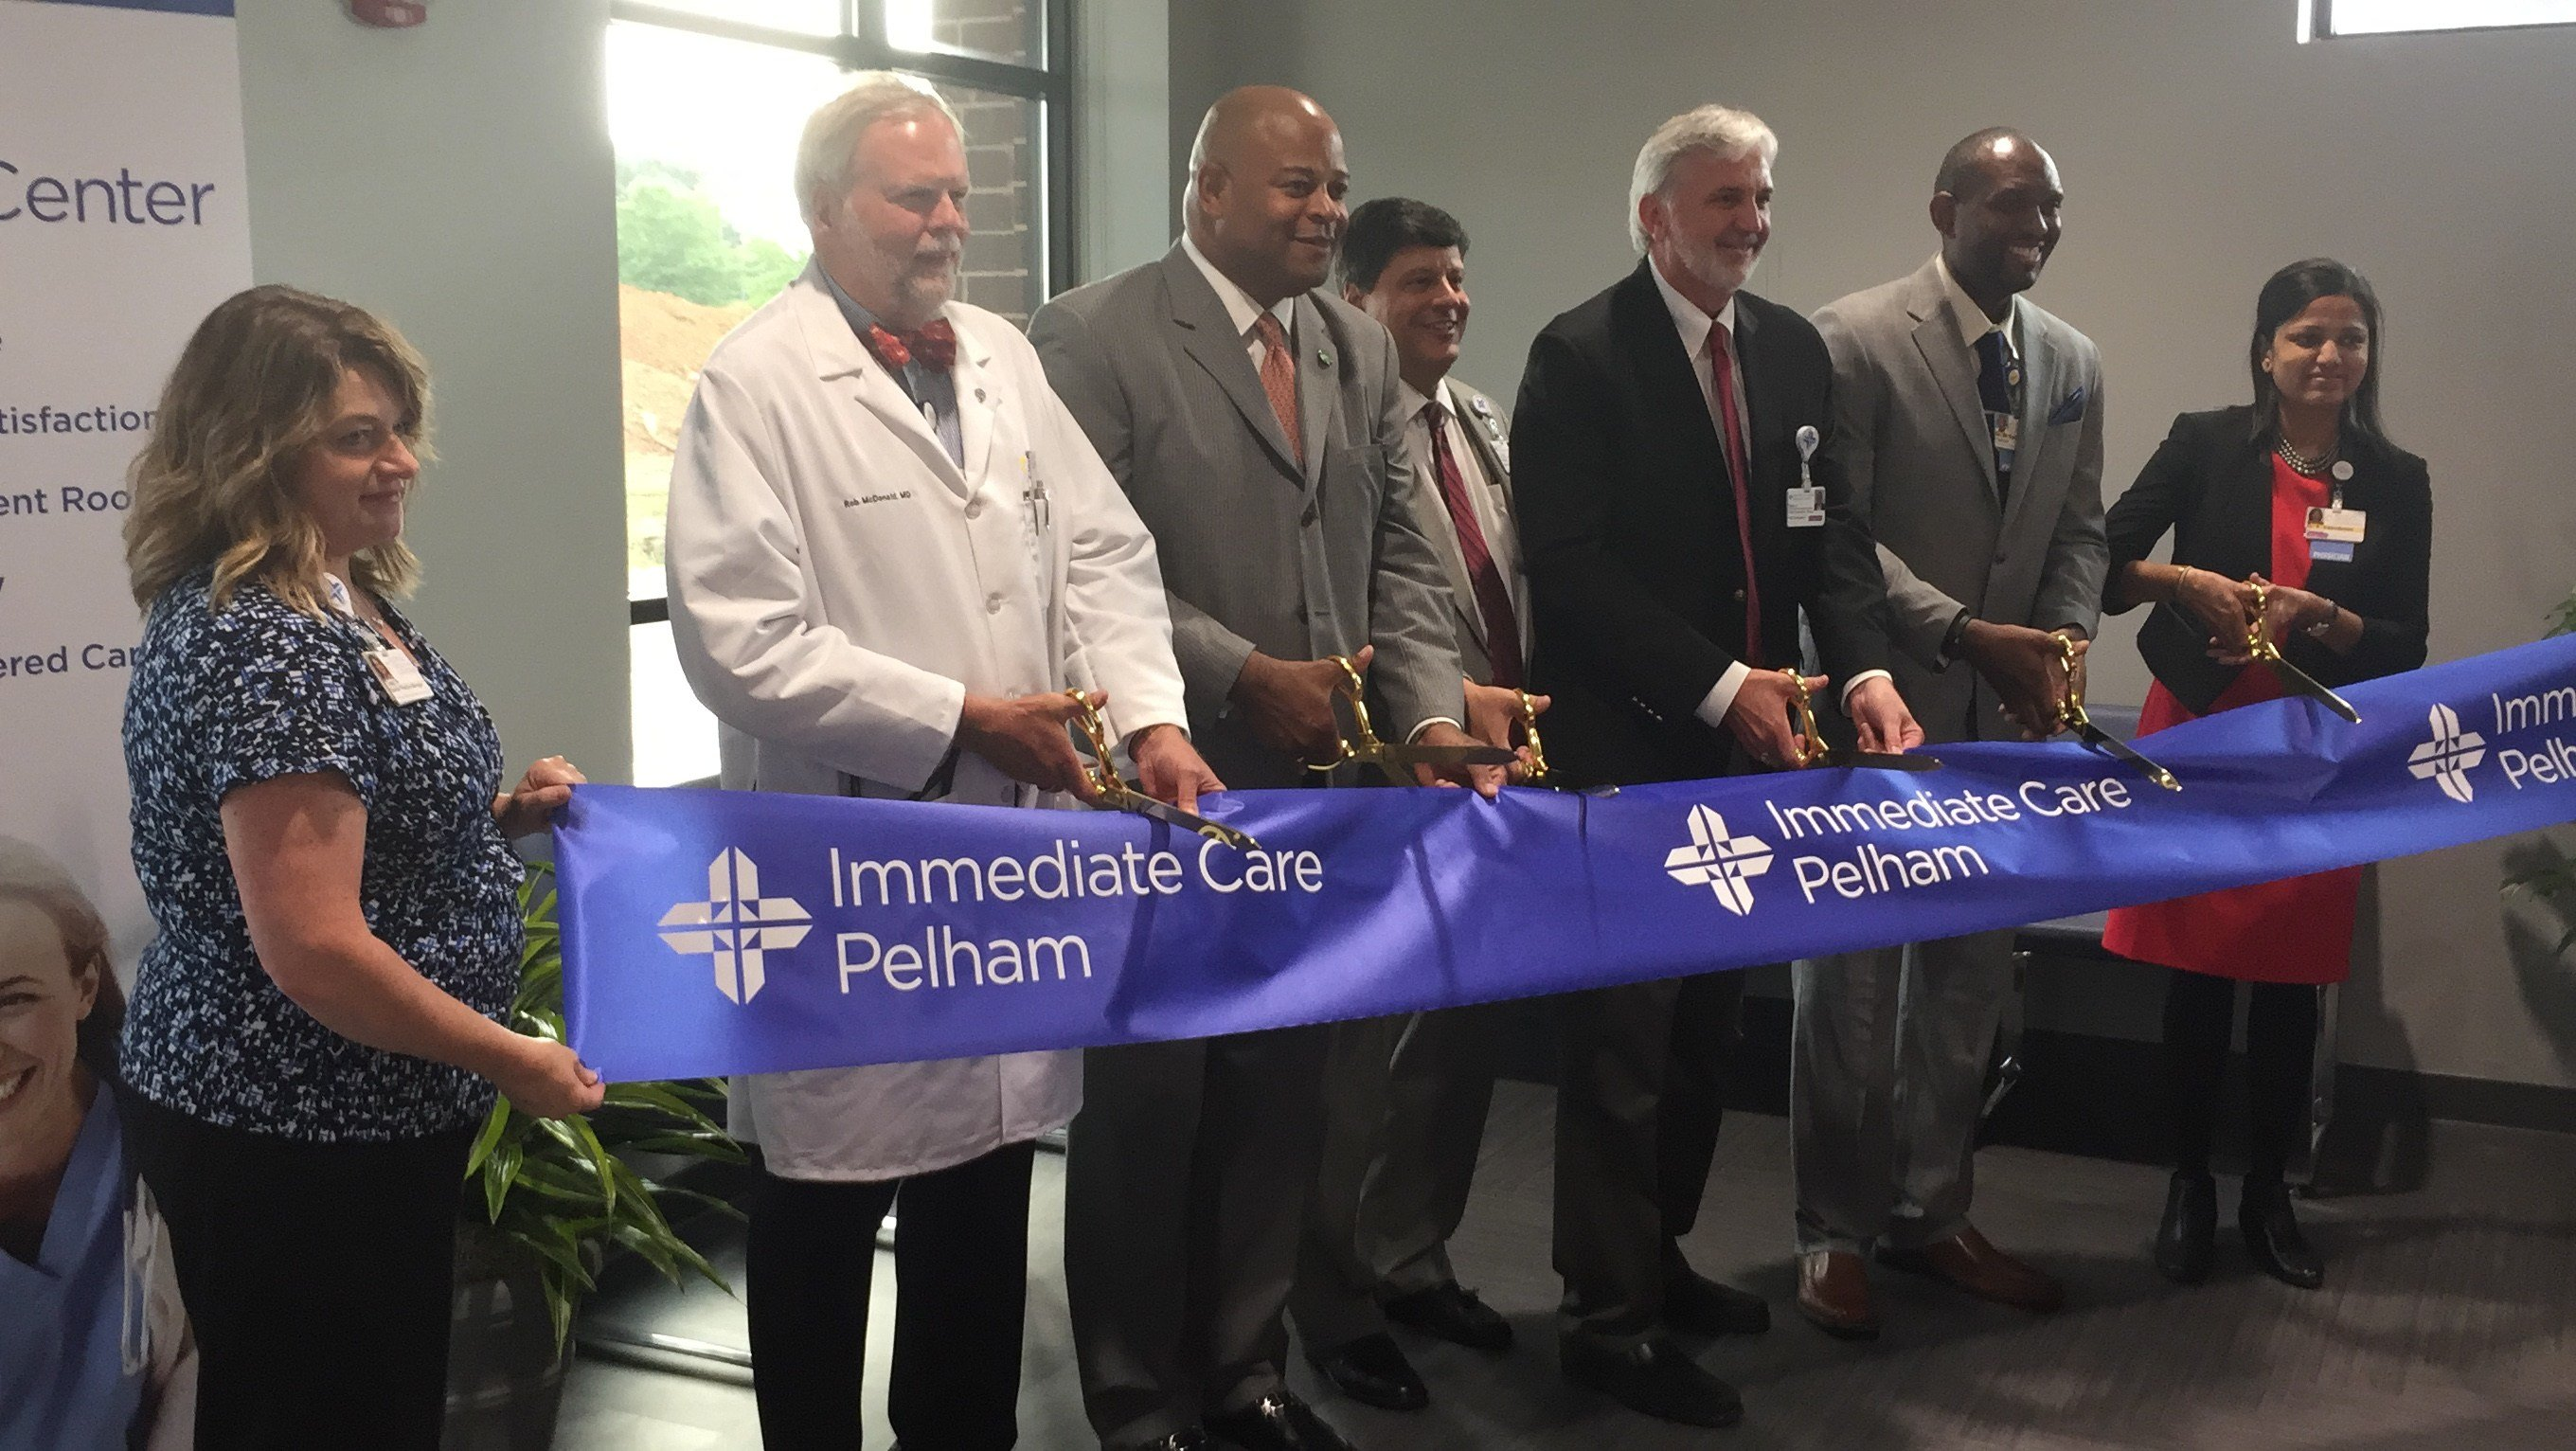 New opening of immediate care center. (Courtesy: SRHS)